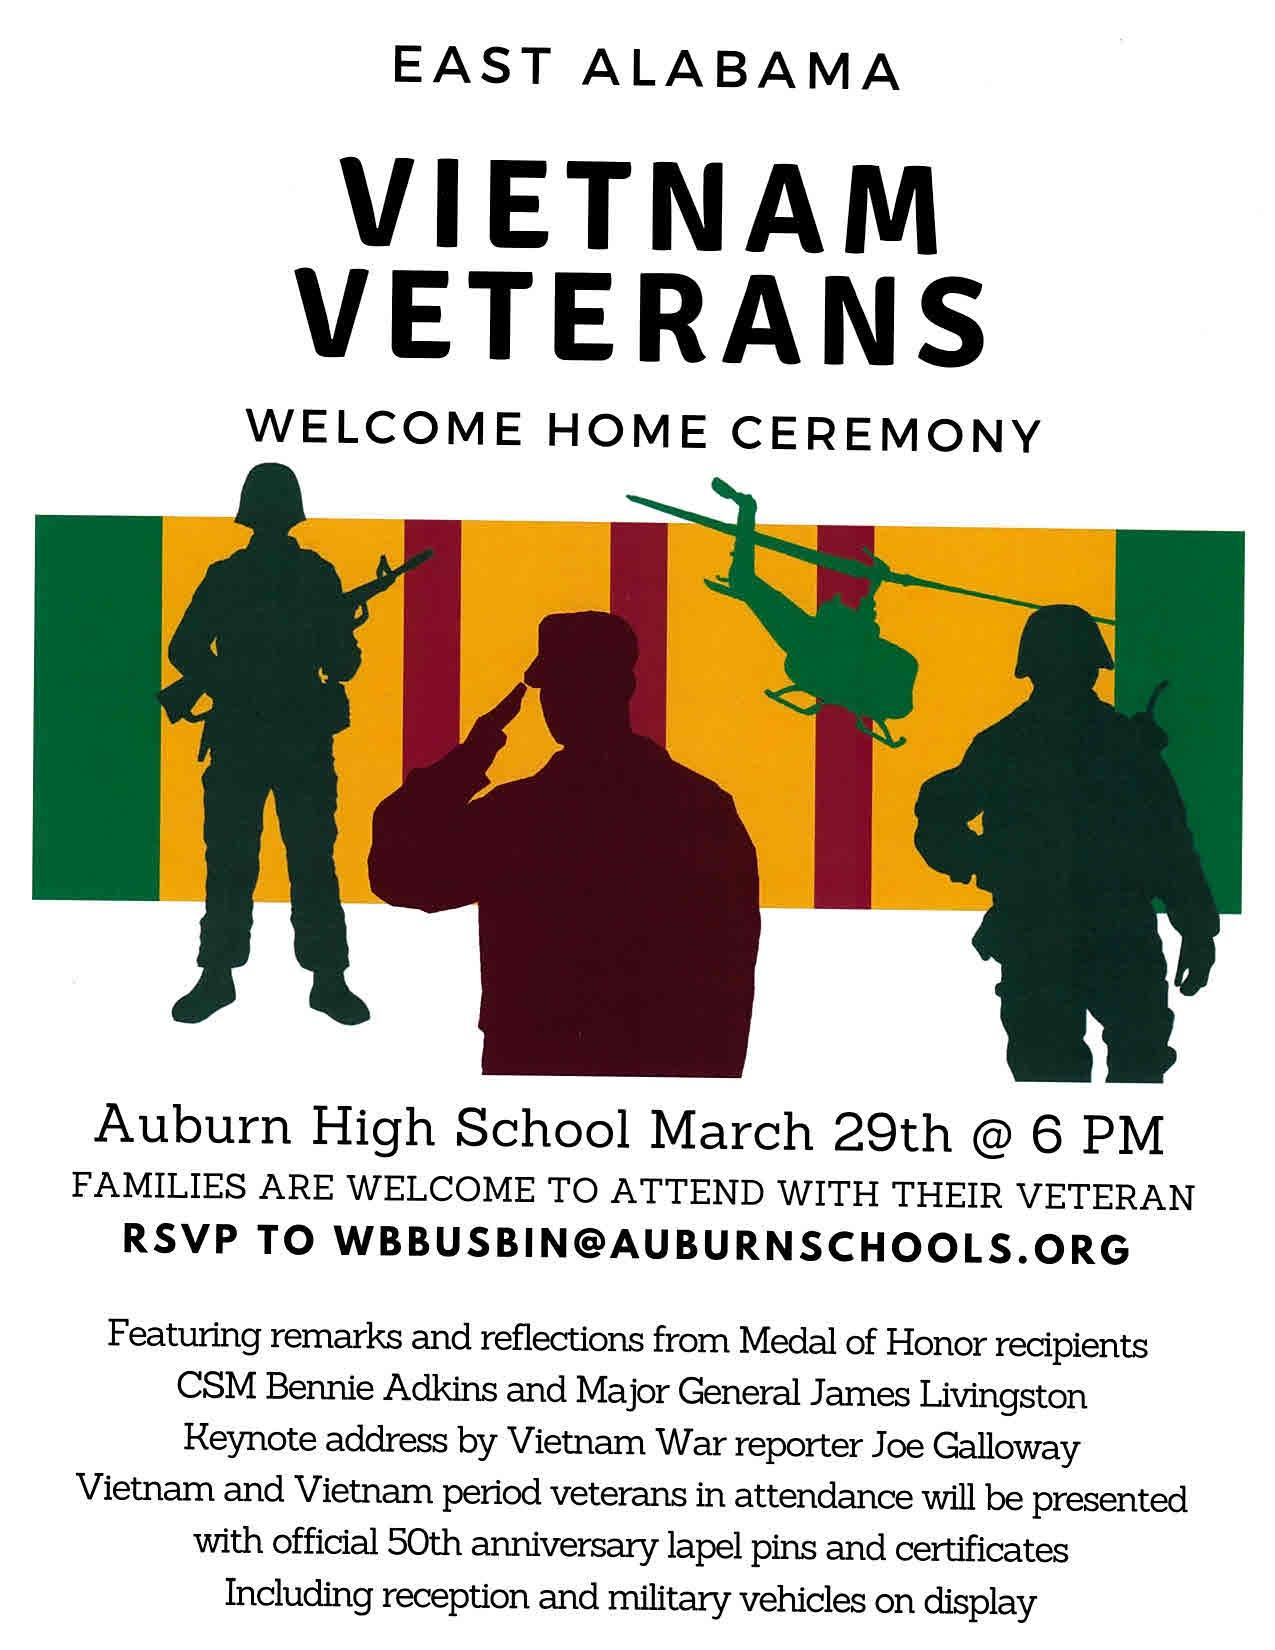 This event's thumbnail was obtained from the organizations Twitter feed   @auburnveterans